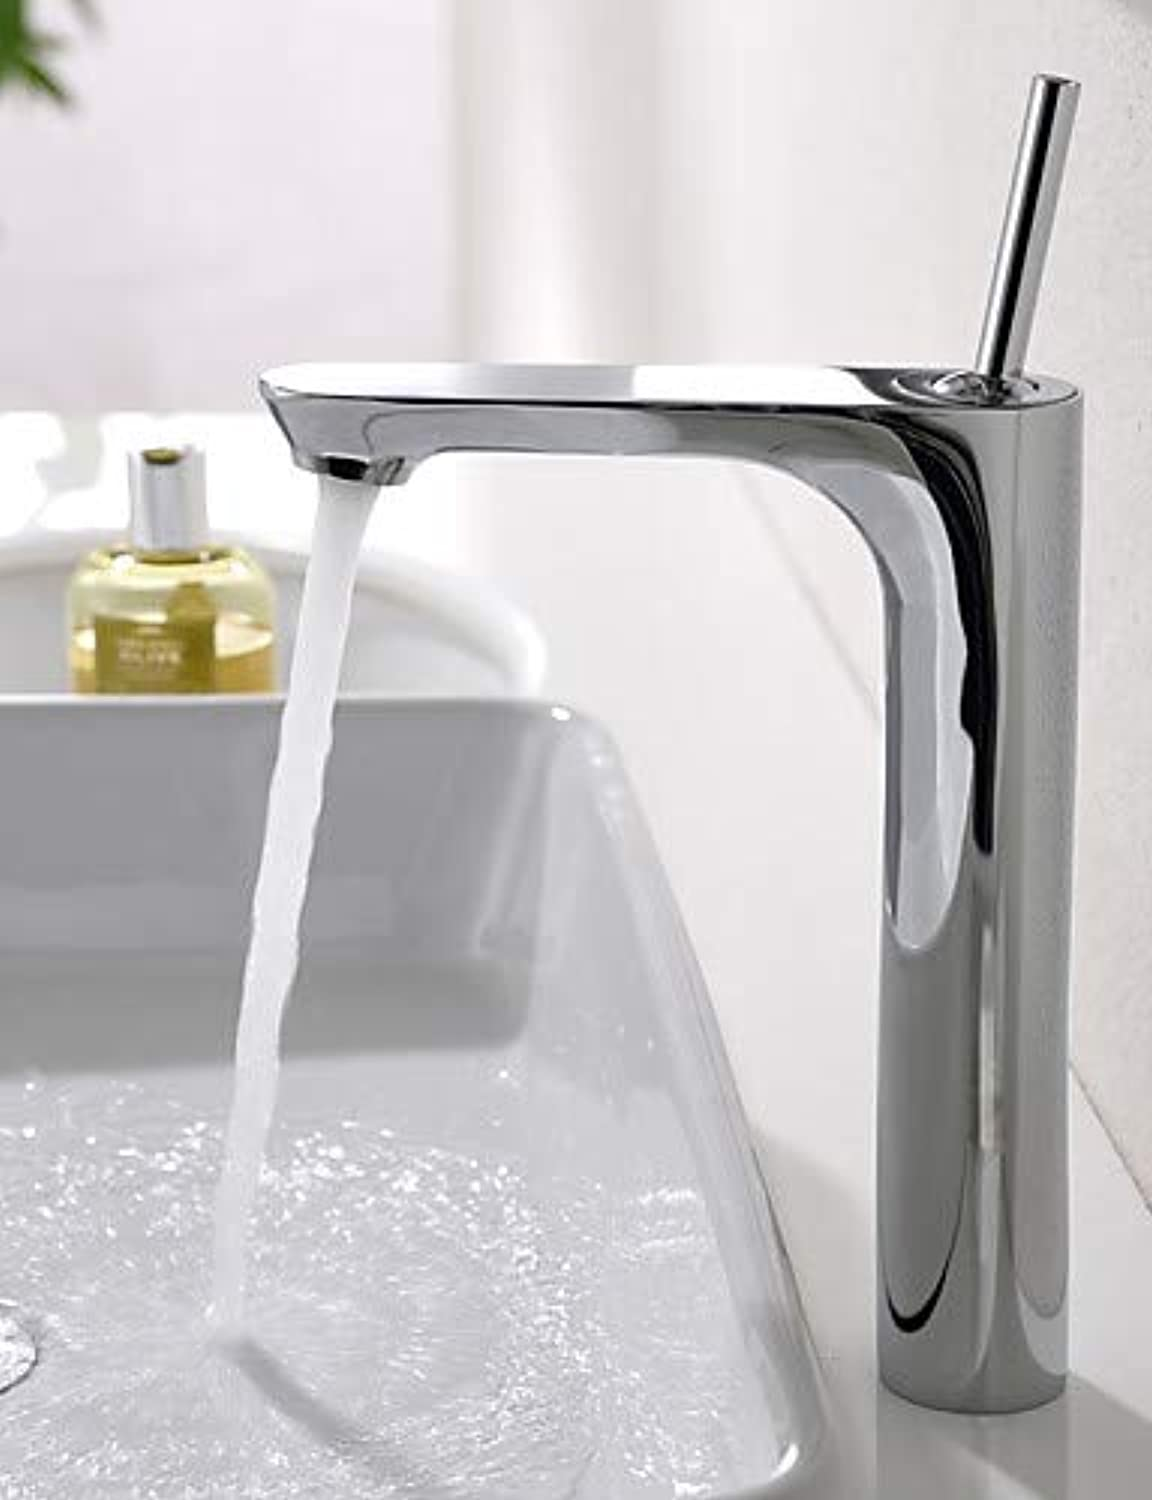 Mainstream home LPZSQ Tap Single Handle Mixer Faucet Tall Bathroom Sink Faucet Chrome Finish  1196